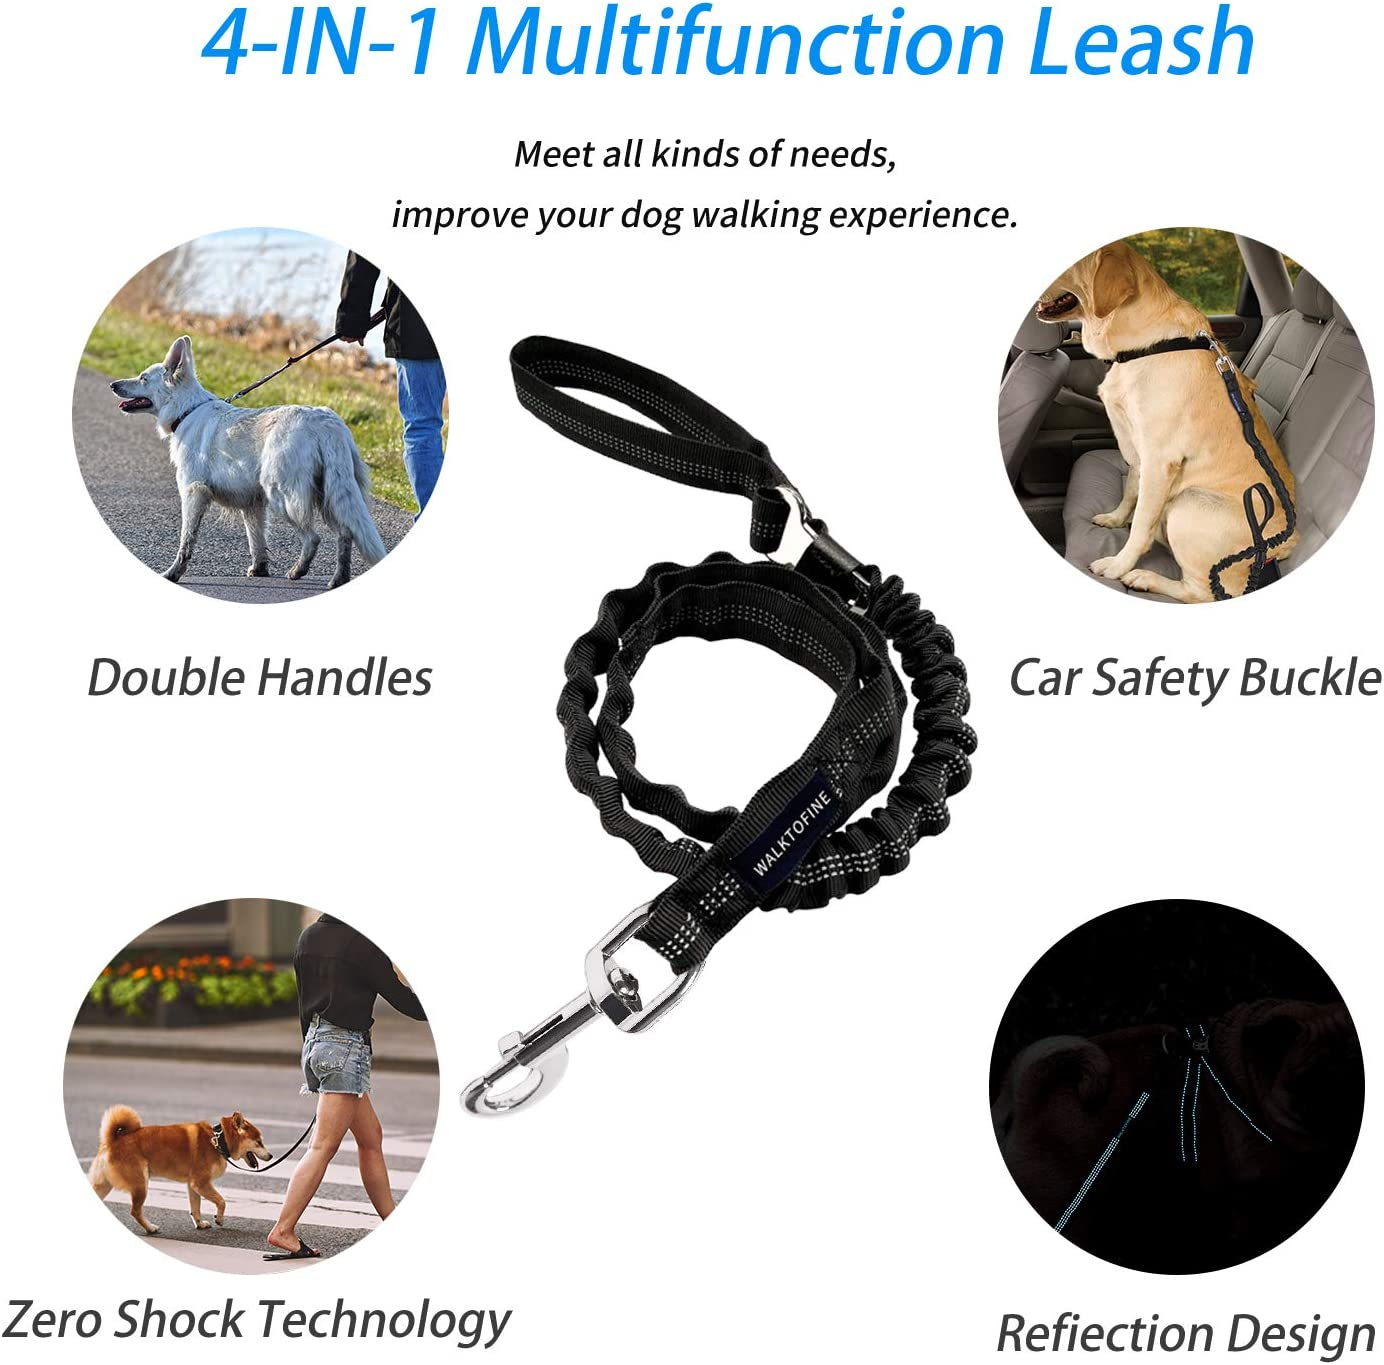 WALKTOFINE 4.5FT Bungee Dog Leash for Large Breed Dogs Heavy Duty Training Dog Leash Black Anti-Pull for Shock Absorption with Car Seat Belt